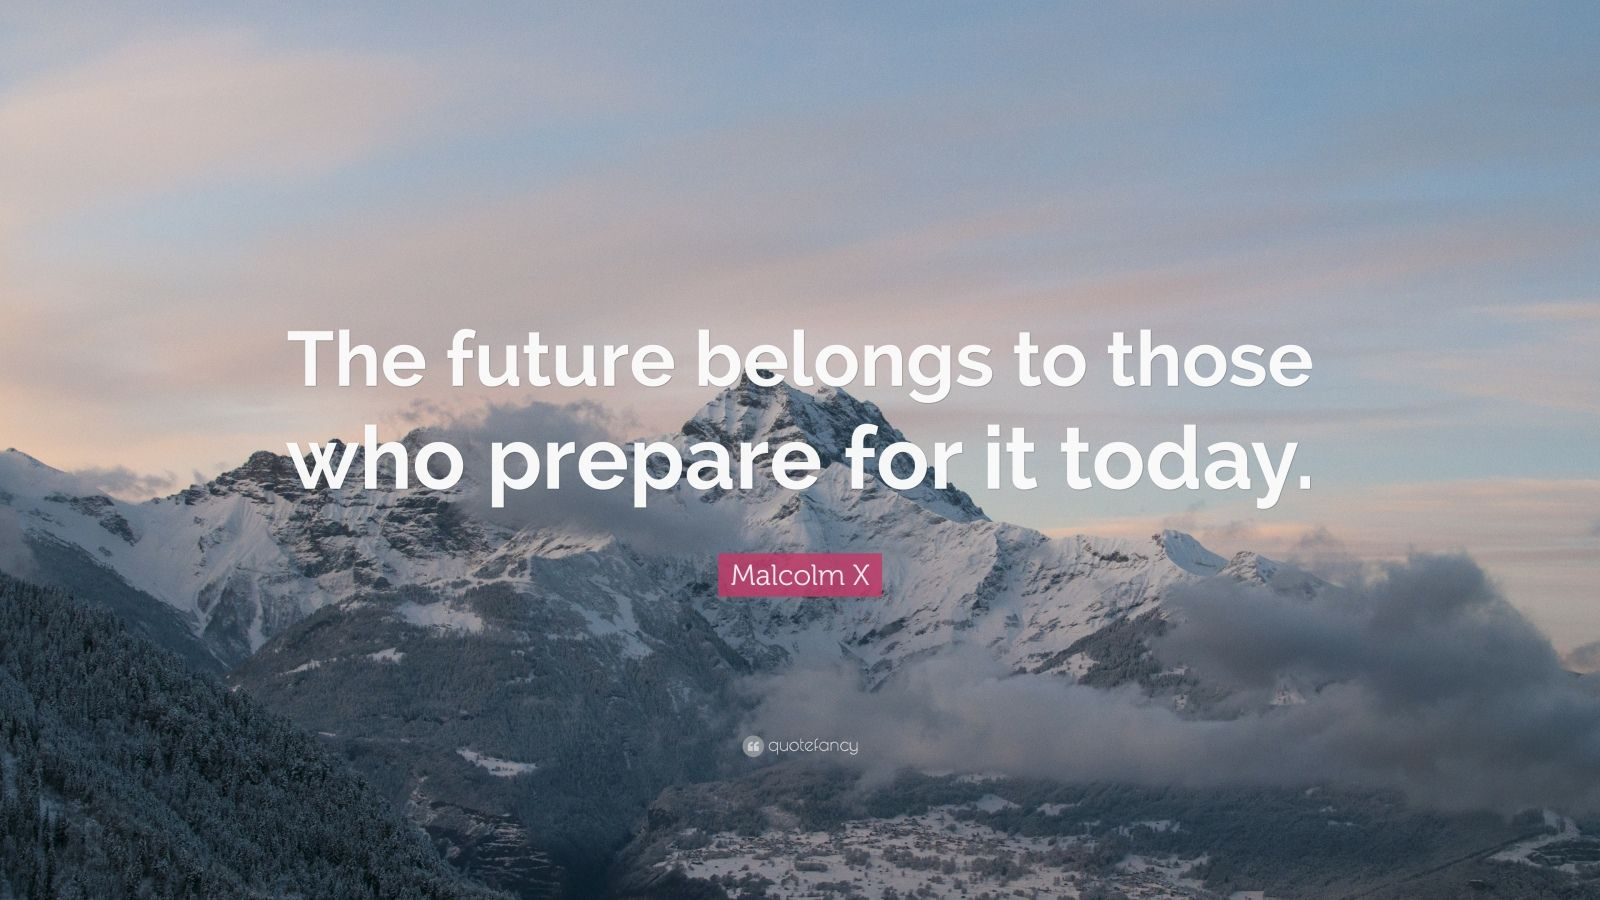 Malcolm X Wallpaper Quotes Malcolm X Quote The Future Belongs To Those Who Prepare